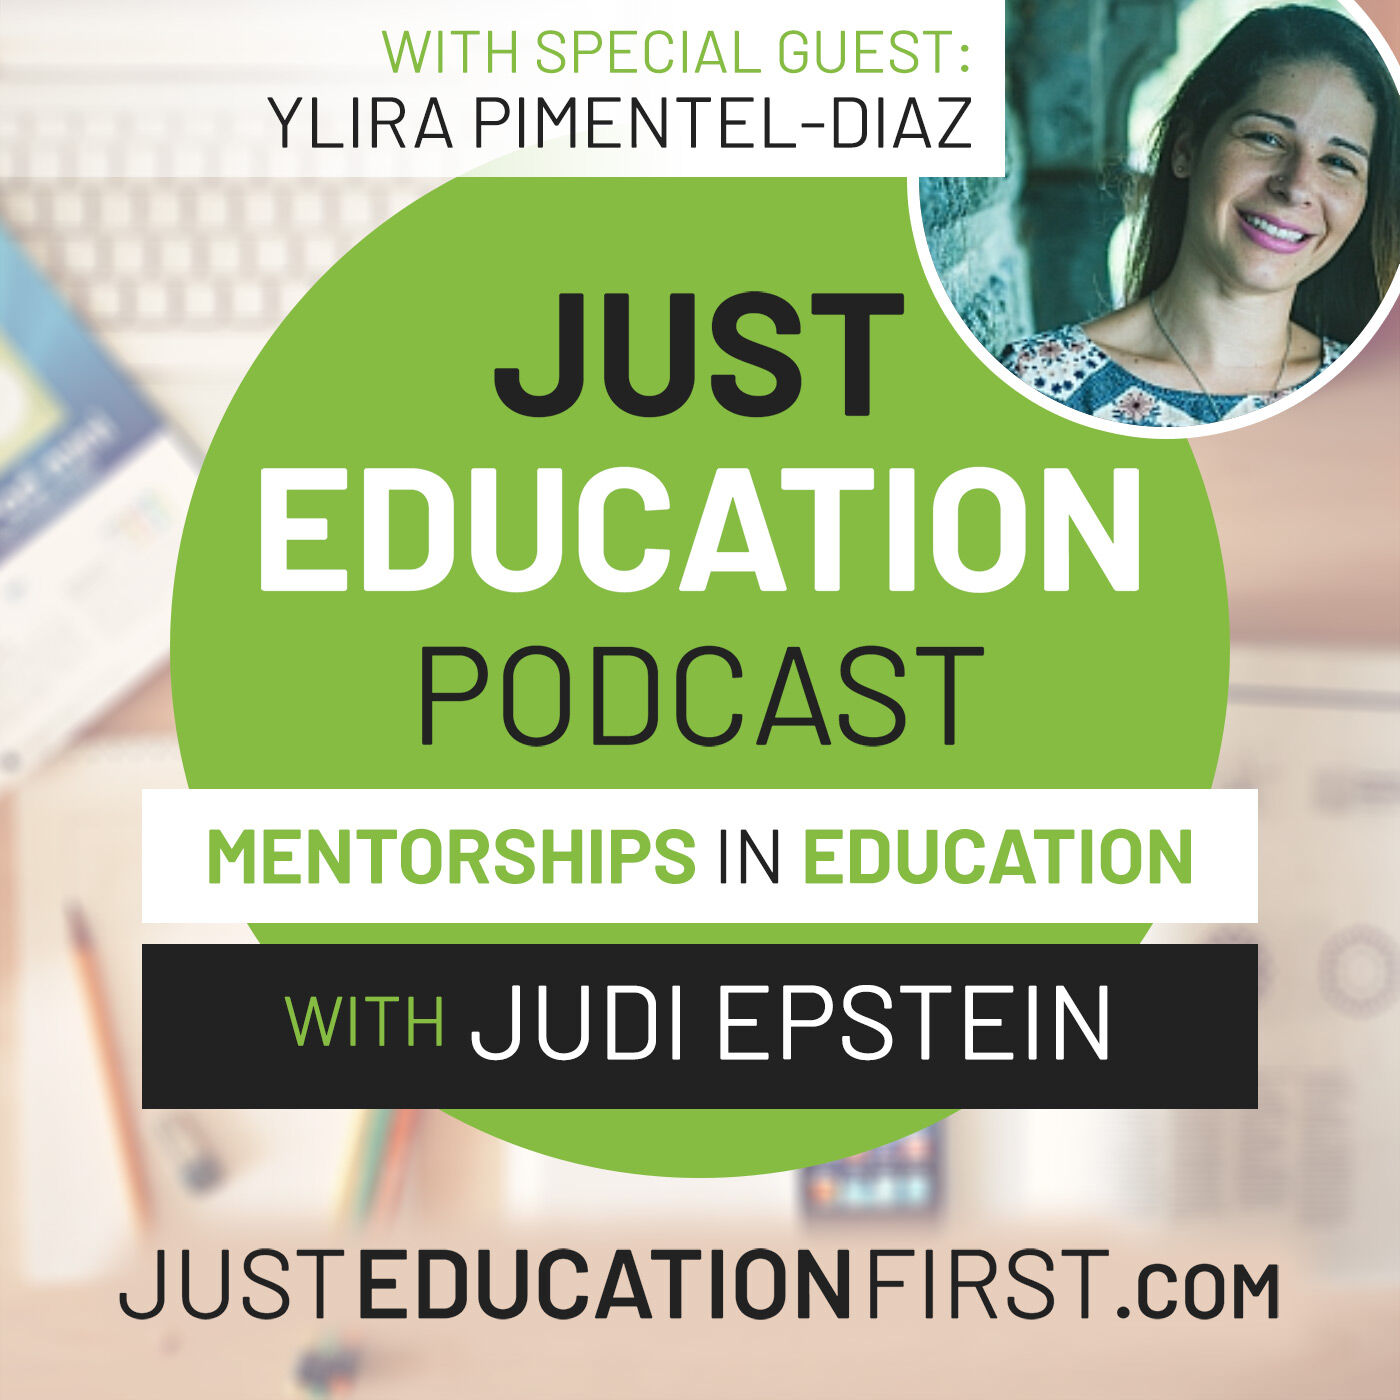 Episode 16 - Ylira Pimentel-Diaz | Behavior Remediation as a Psychotherapist and Community Consultant